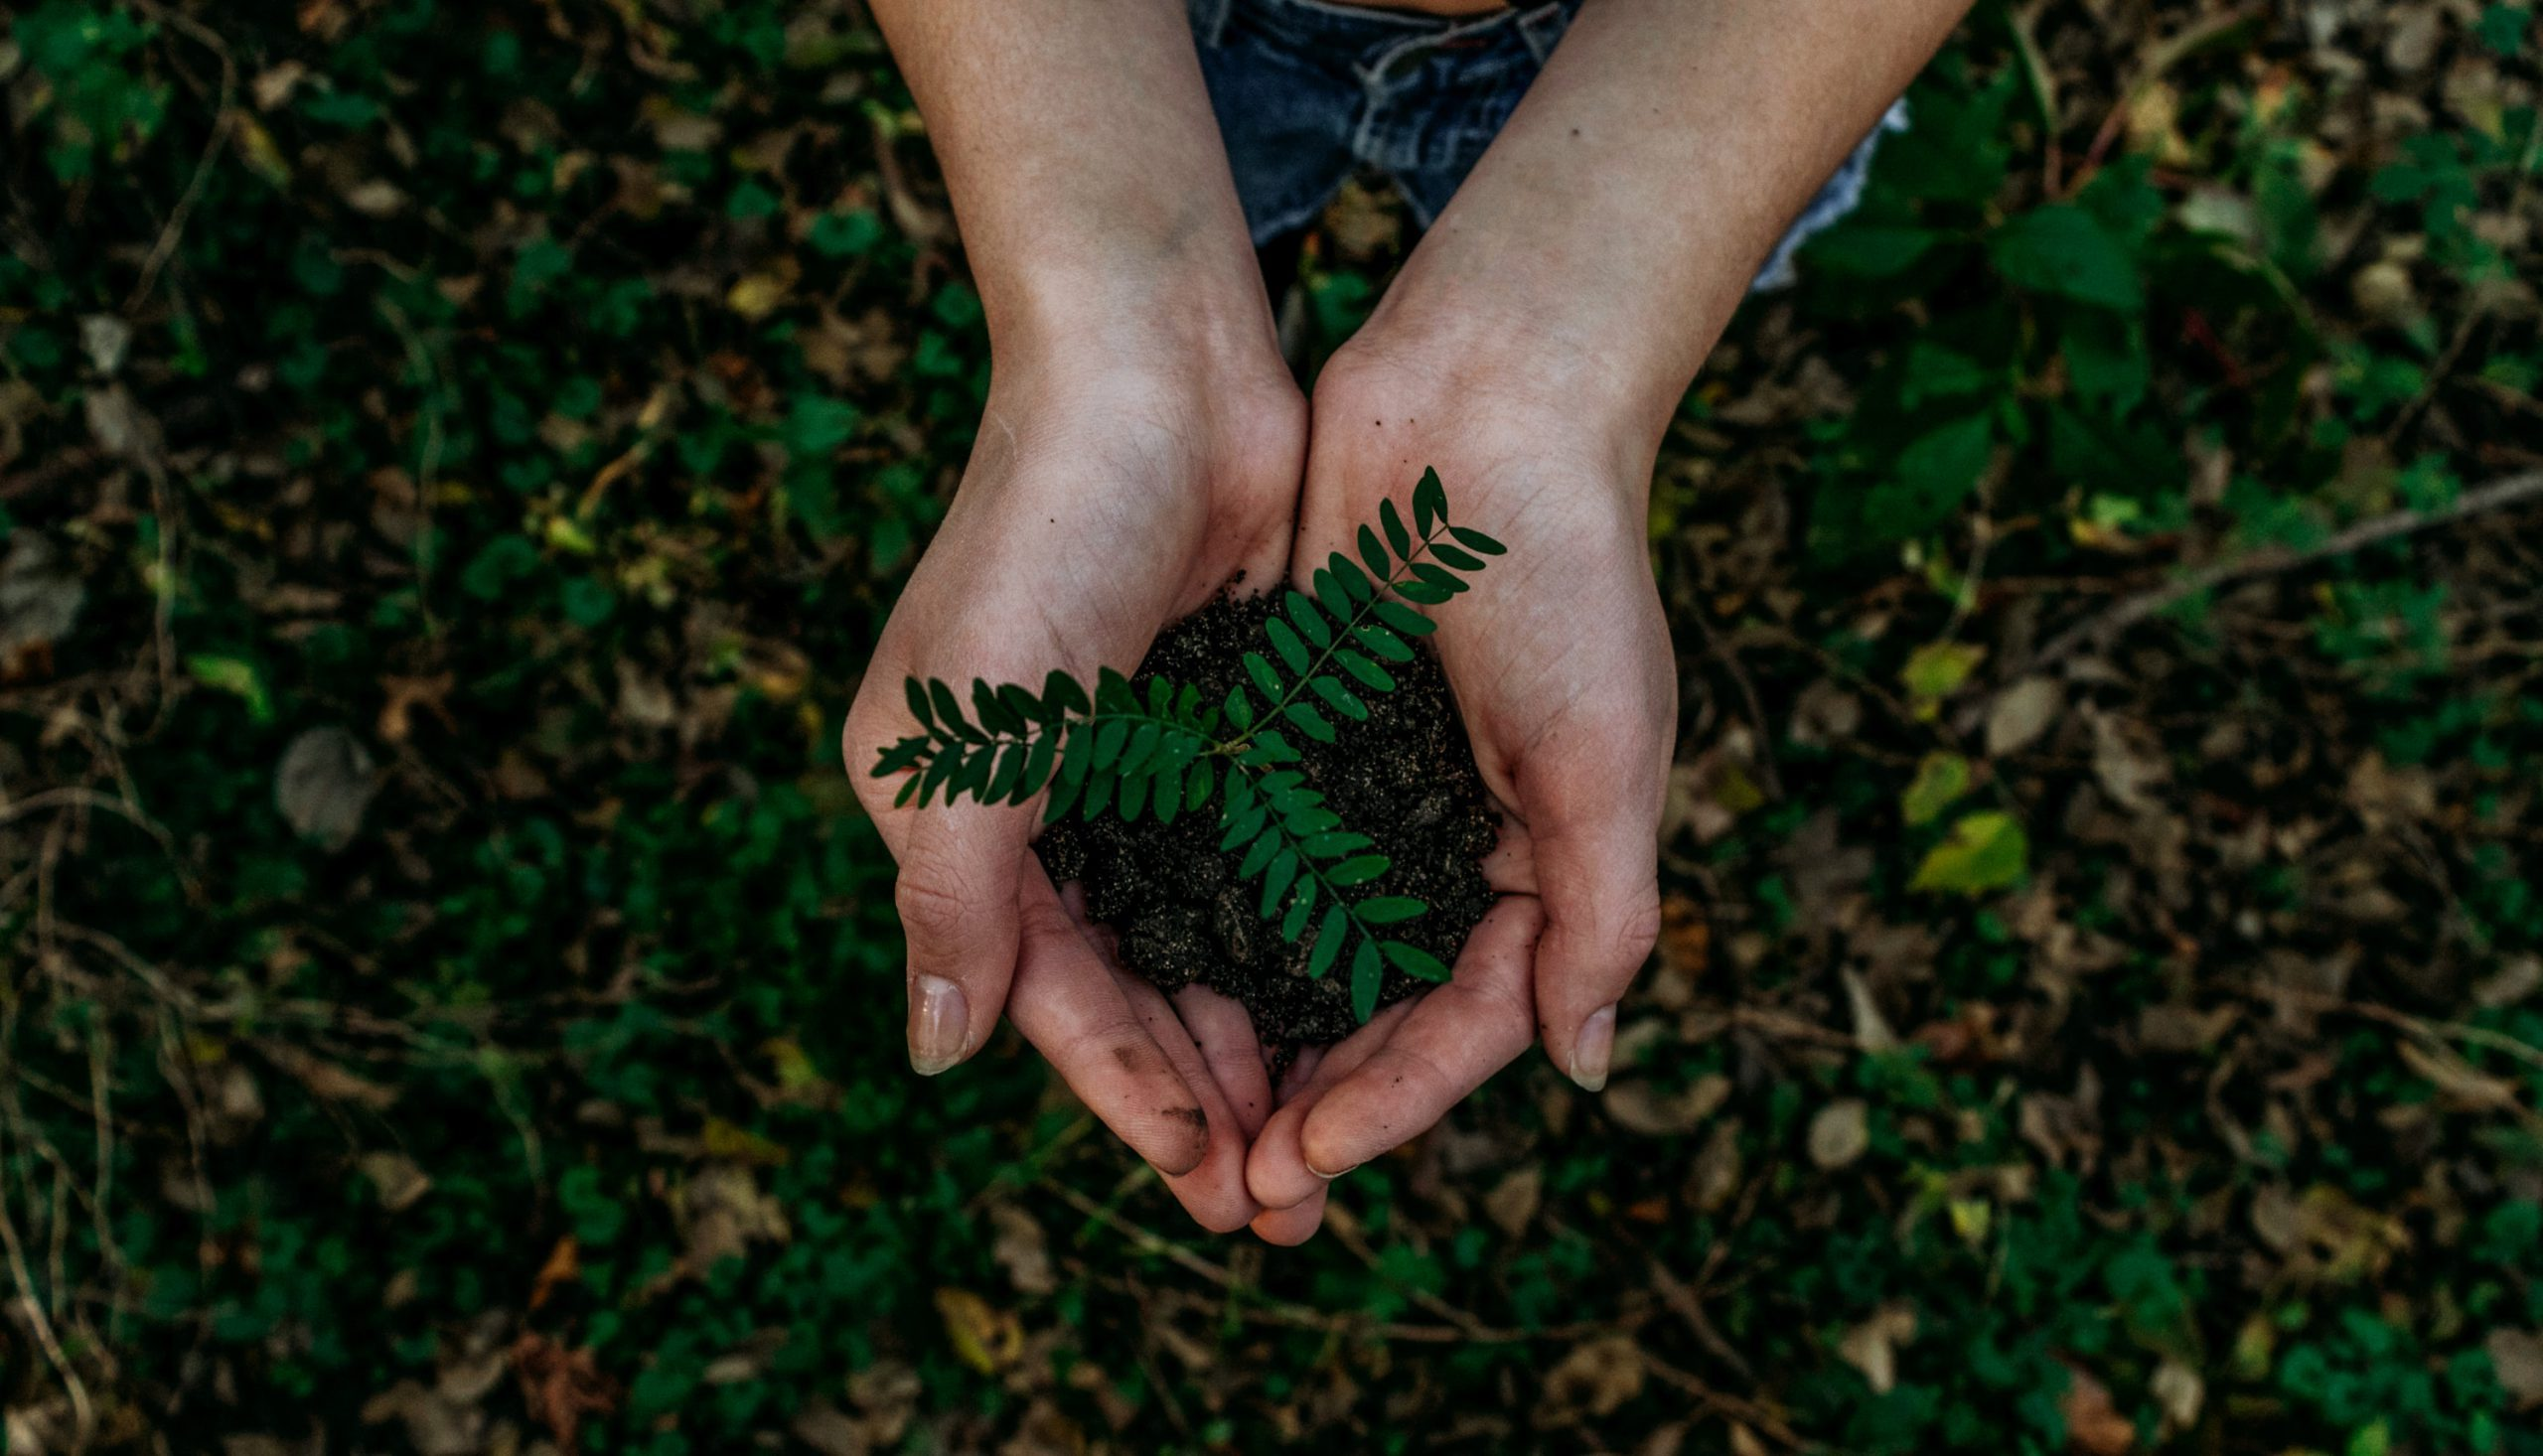 Sustainability image of hands holding a plant and soil